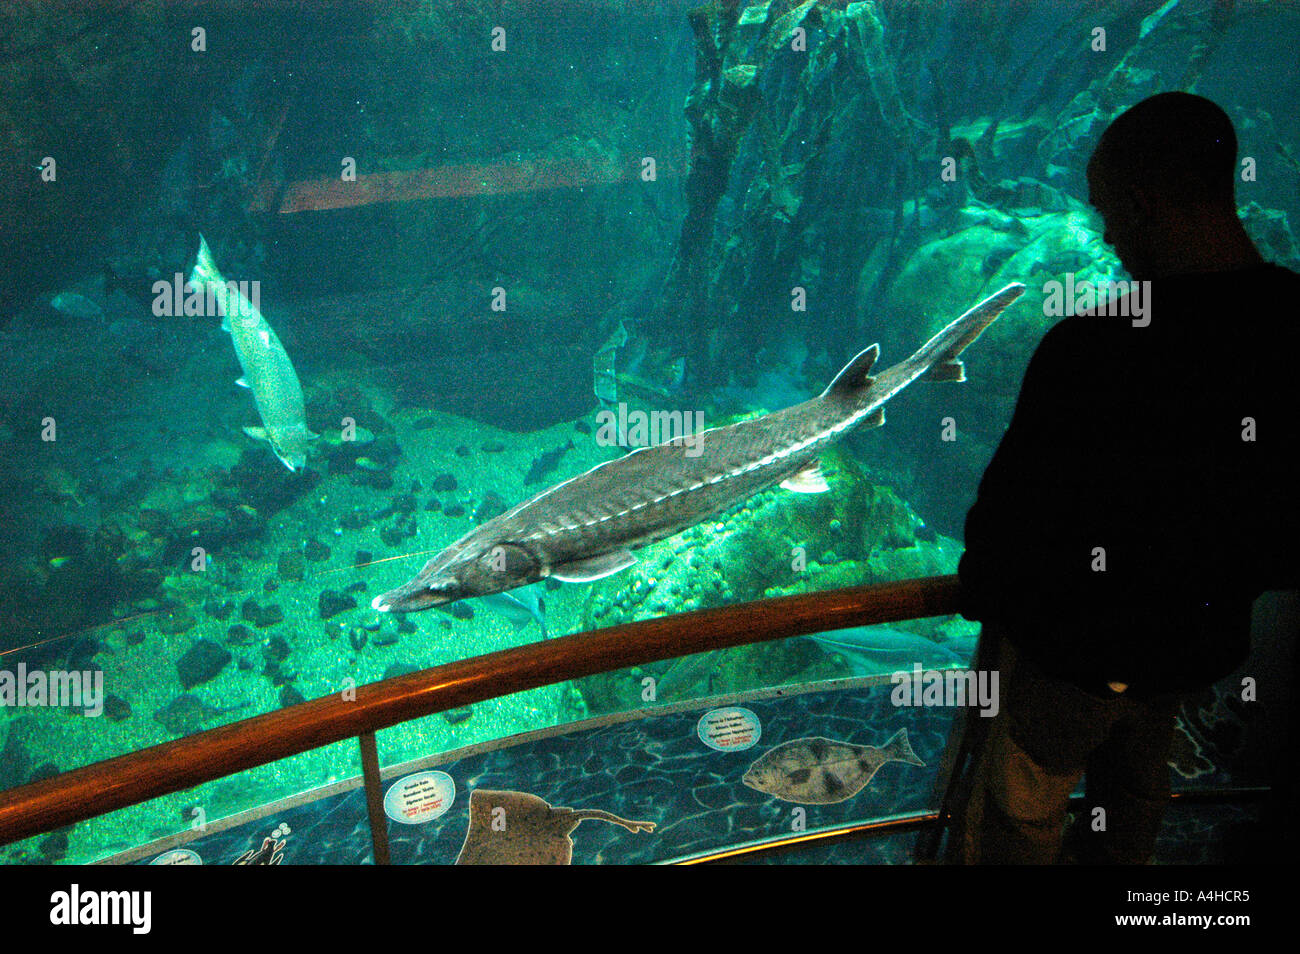 Fish aquarium in canada - Biodomo Aquarium Zoo Montreal Canada Quebec Atlantic Sturgeon Acipenser Oxyrinchos Ocean Marine Sportfishing Sport Fishing Under